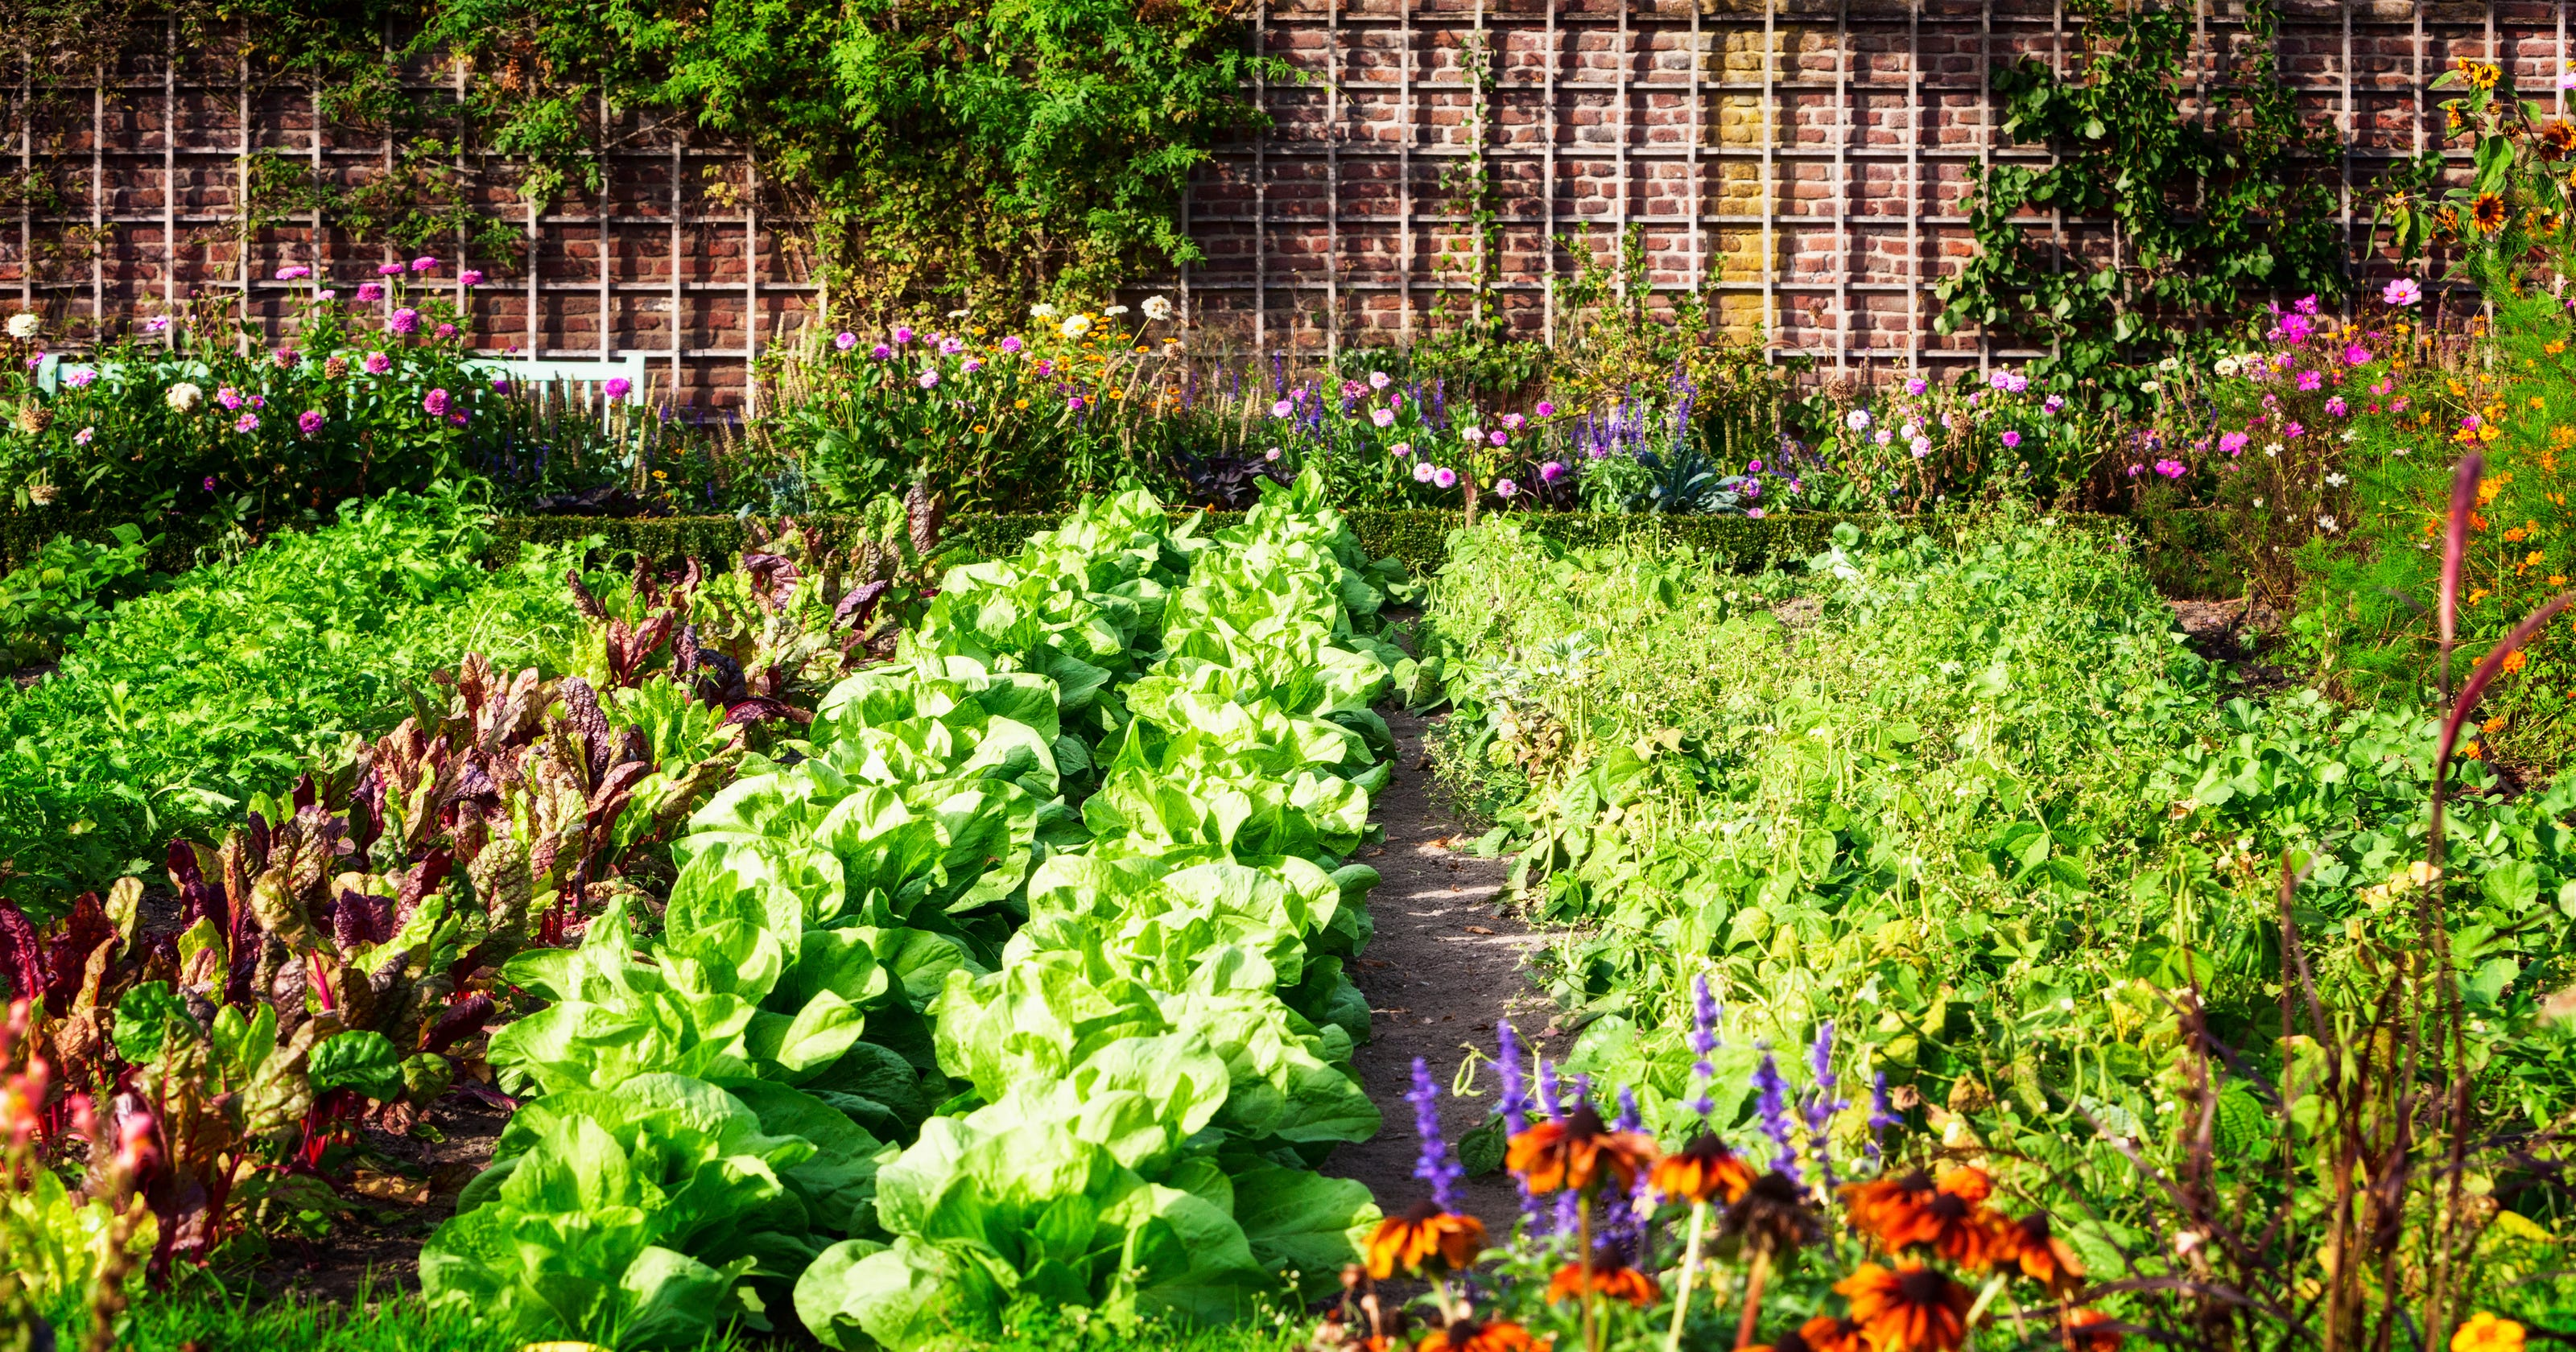 How To Start Your Own Backyard Vegetable Garden